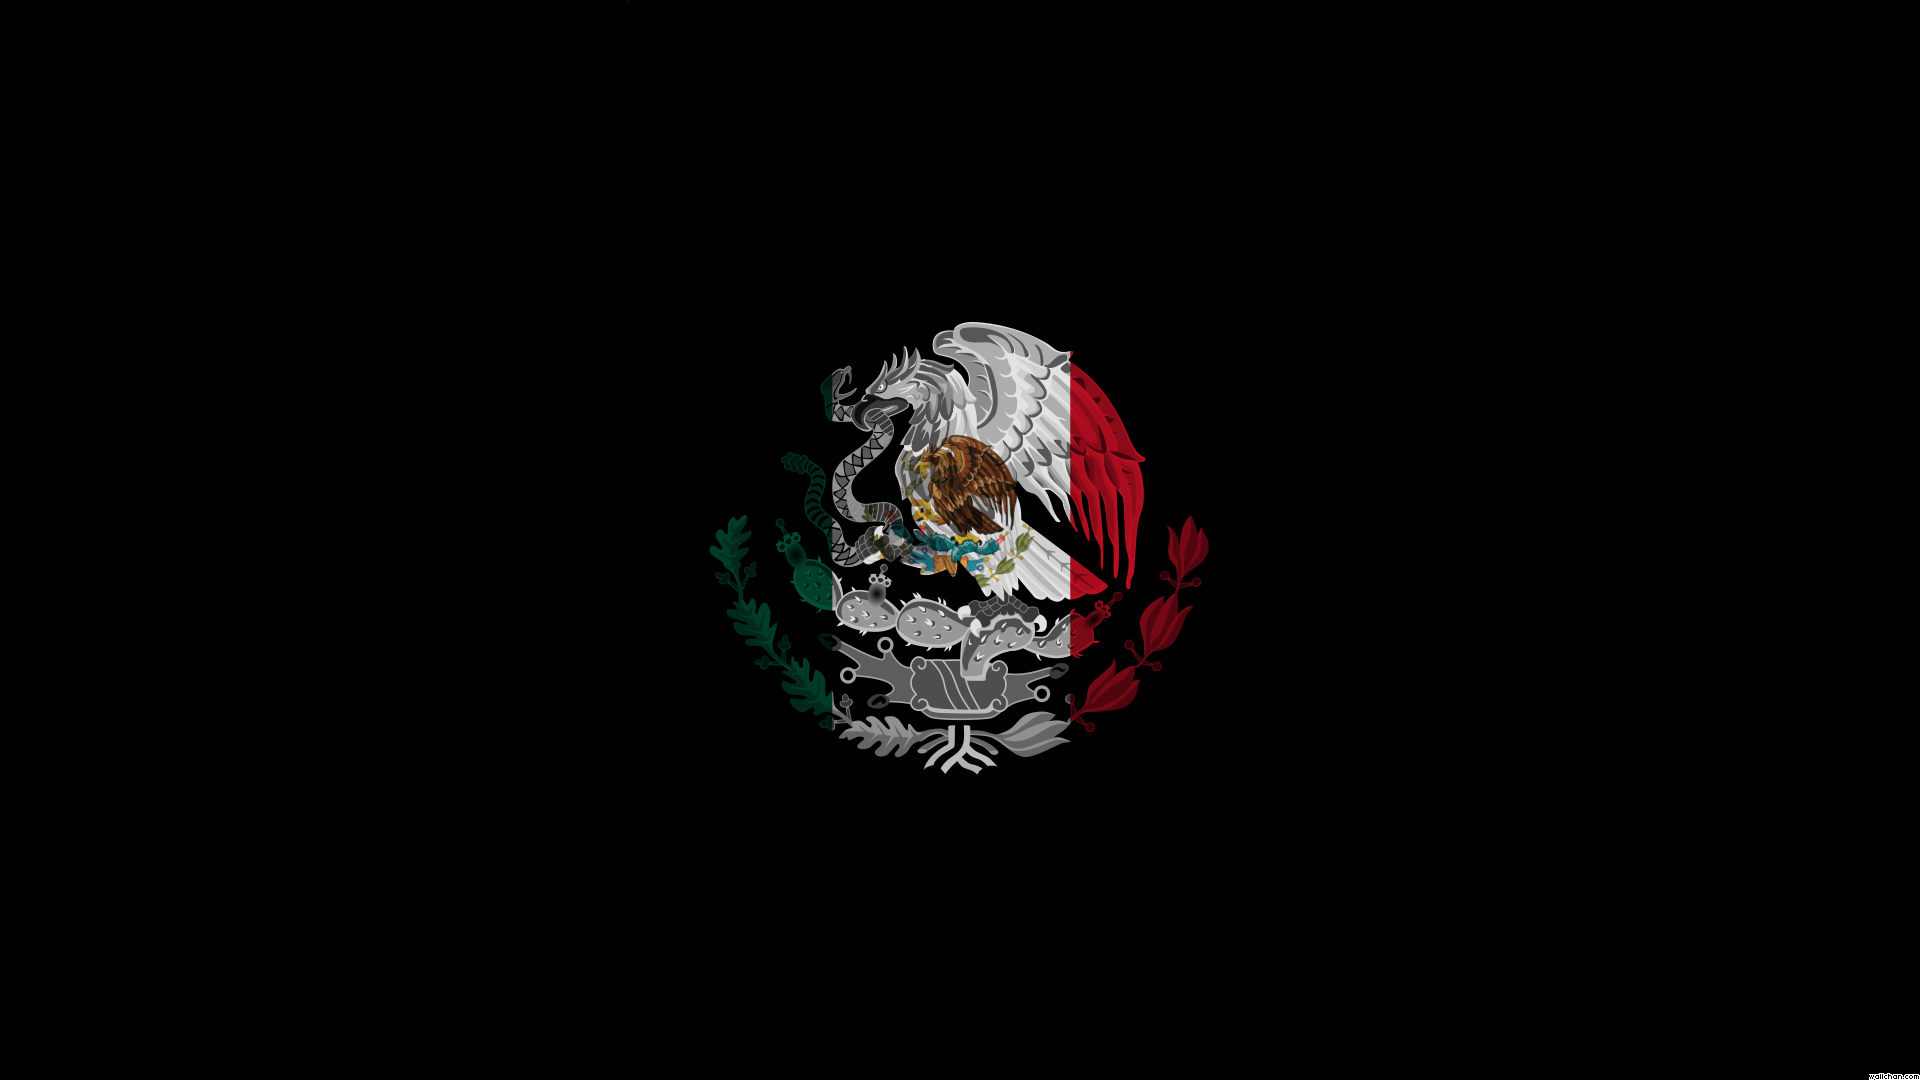 Cool Mexico Flag Wallpaper in 2019 Mexico wallpaper